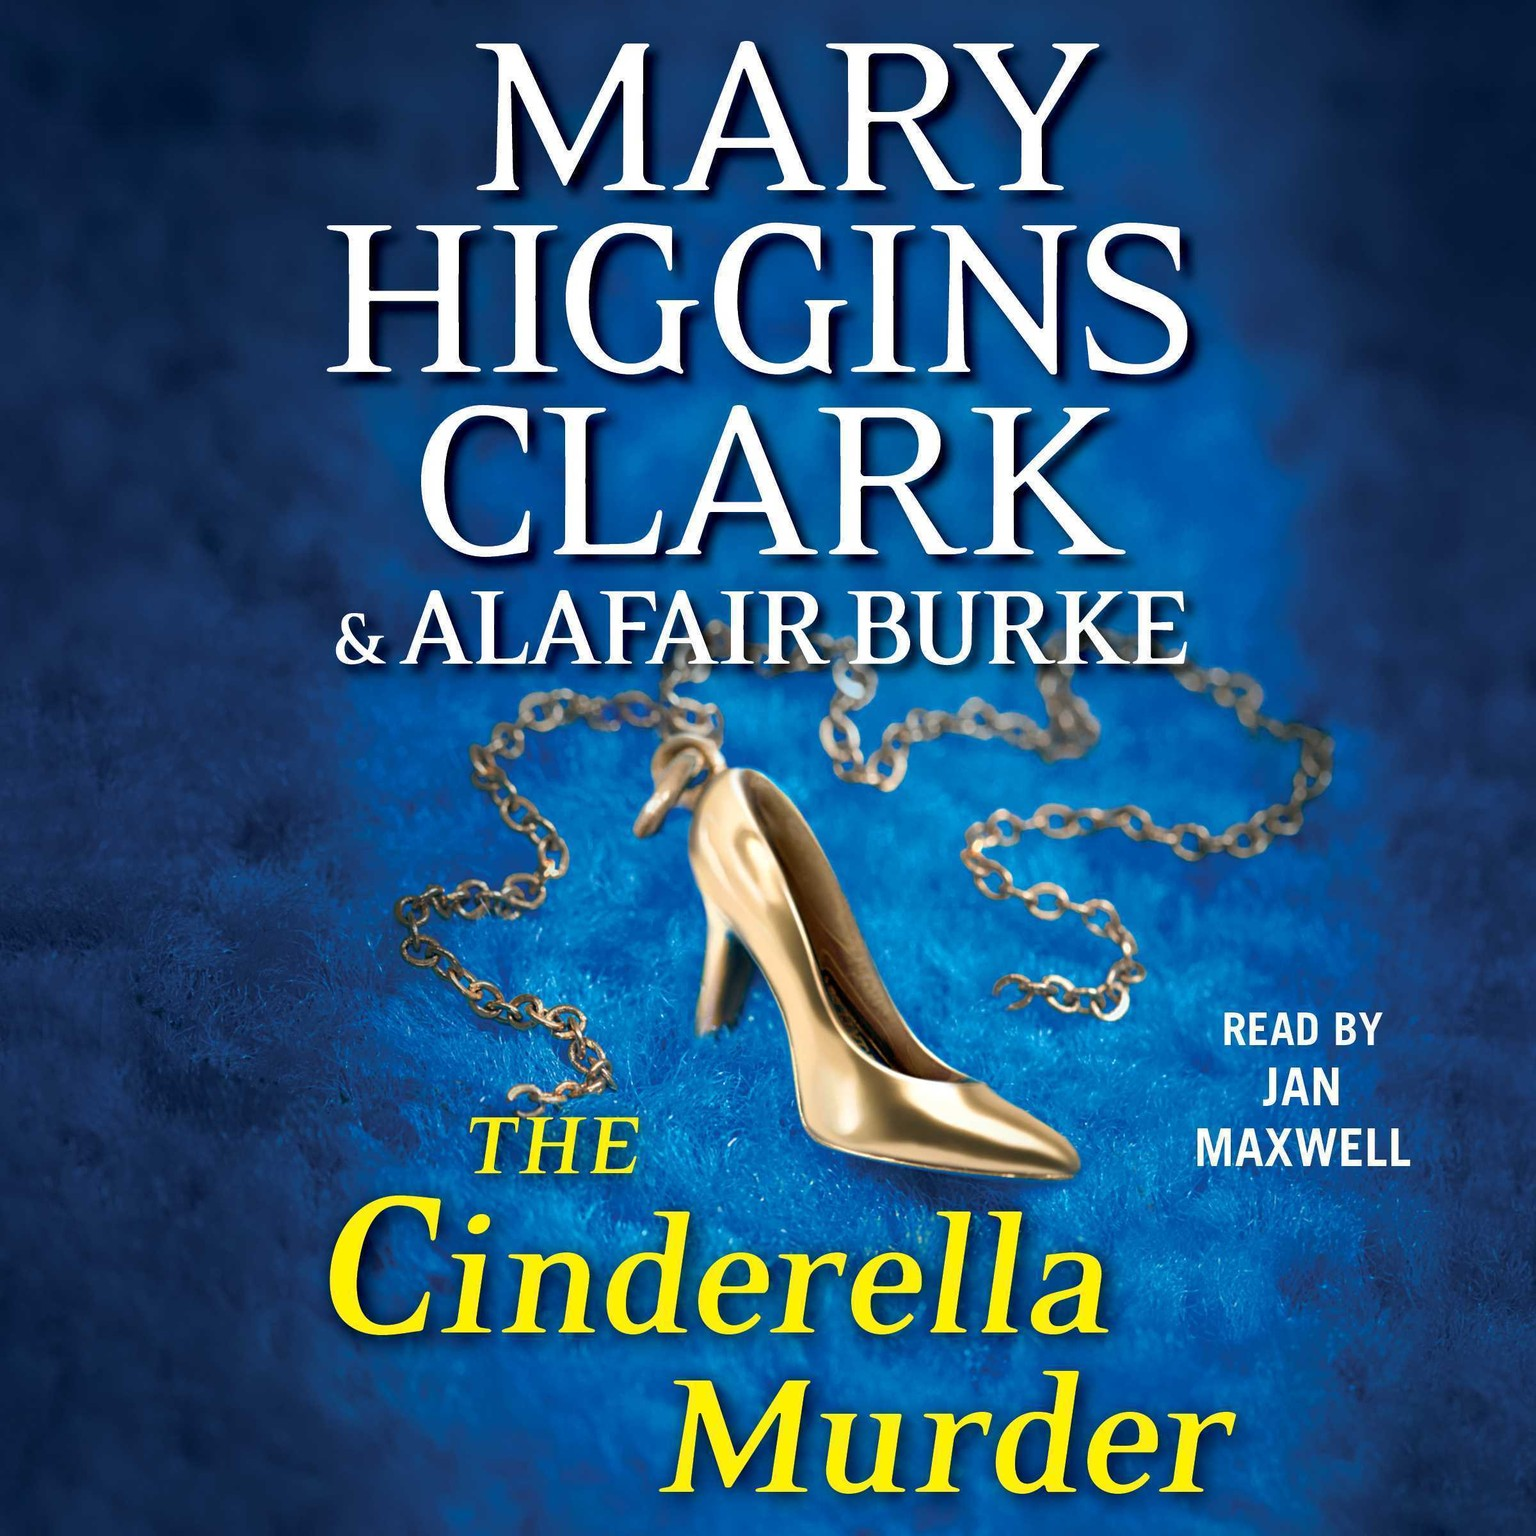 Printable The Cinderella Murder Audiobook Cover Art